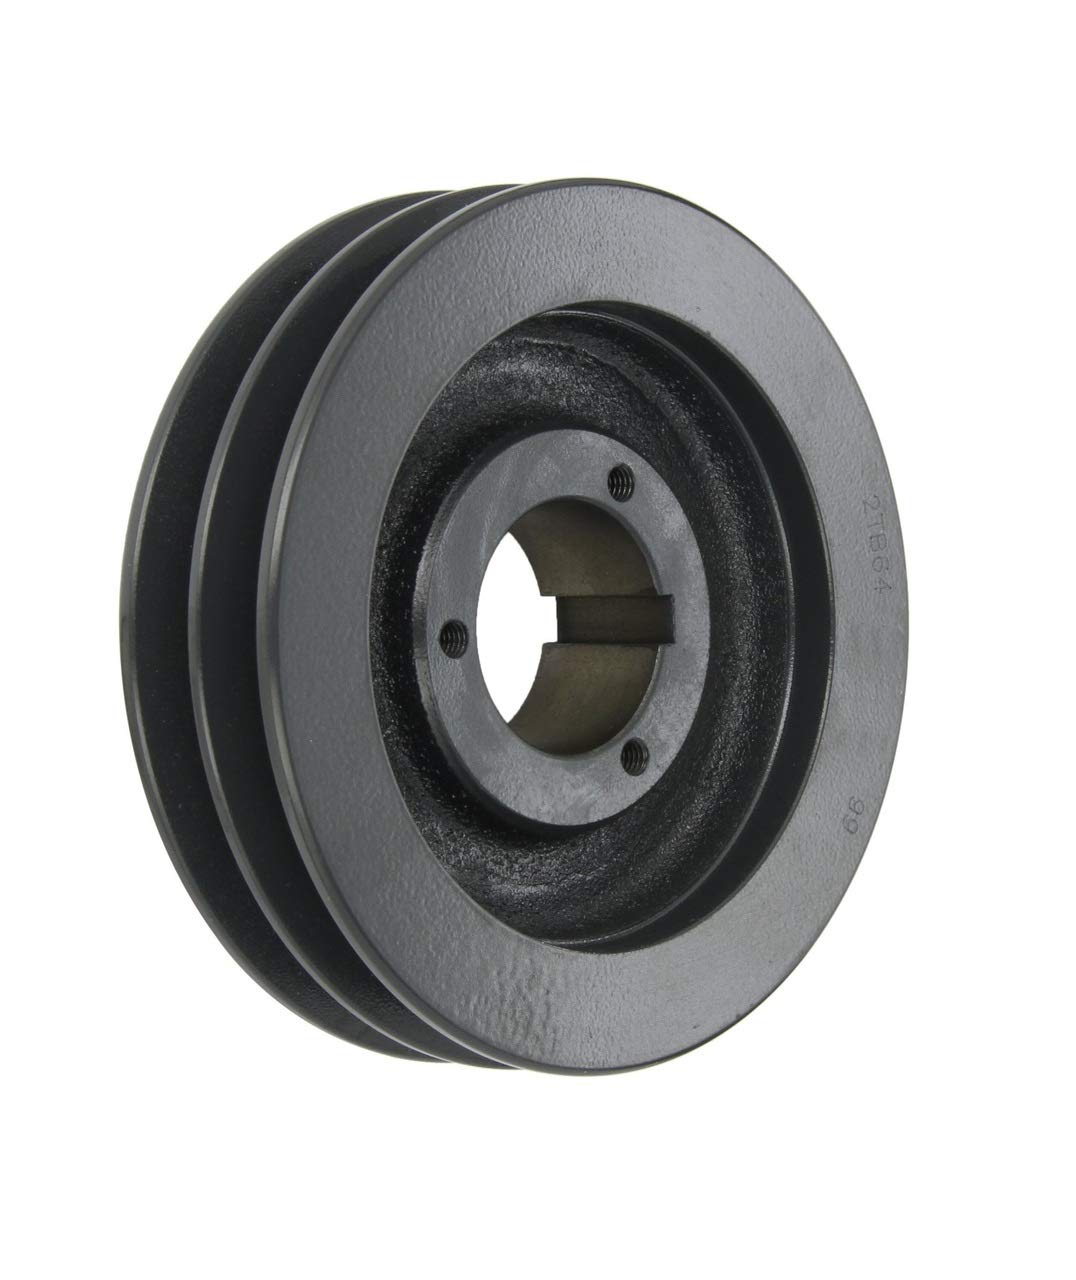 2B74Q1 V-Belt Pulley, Q1 Split Bushing,-